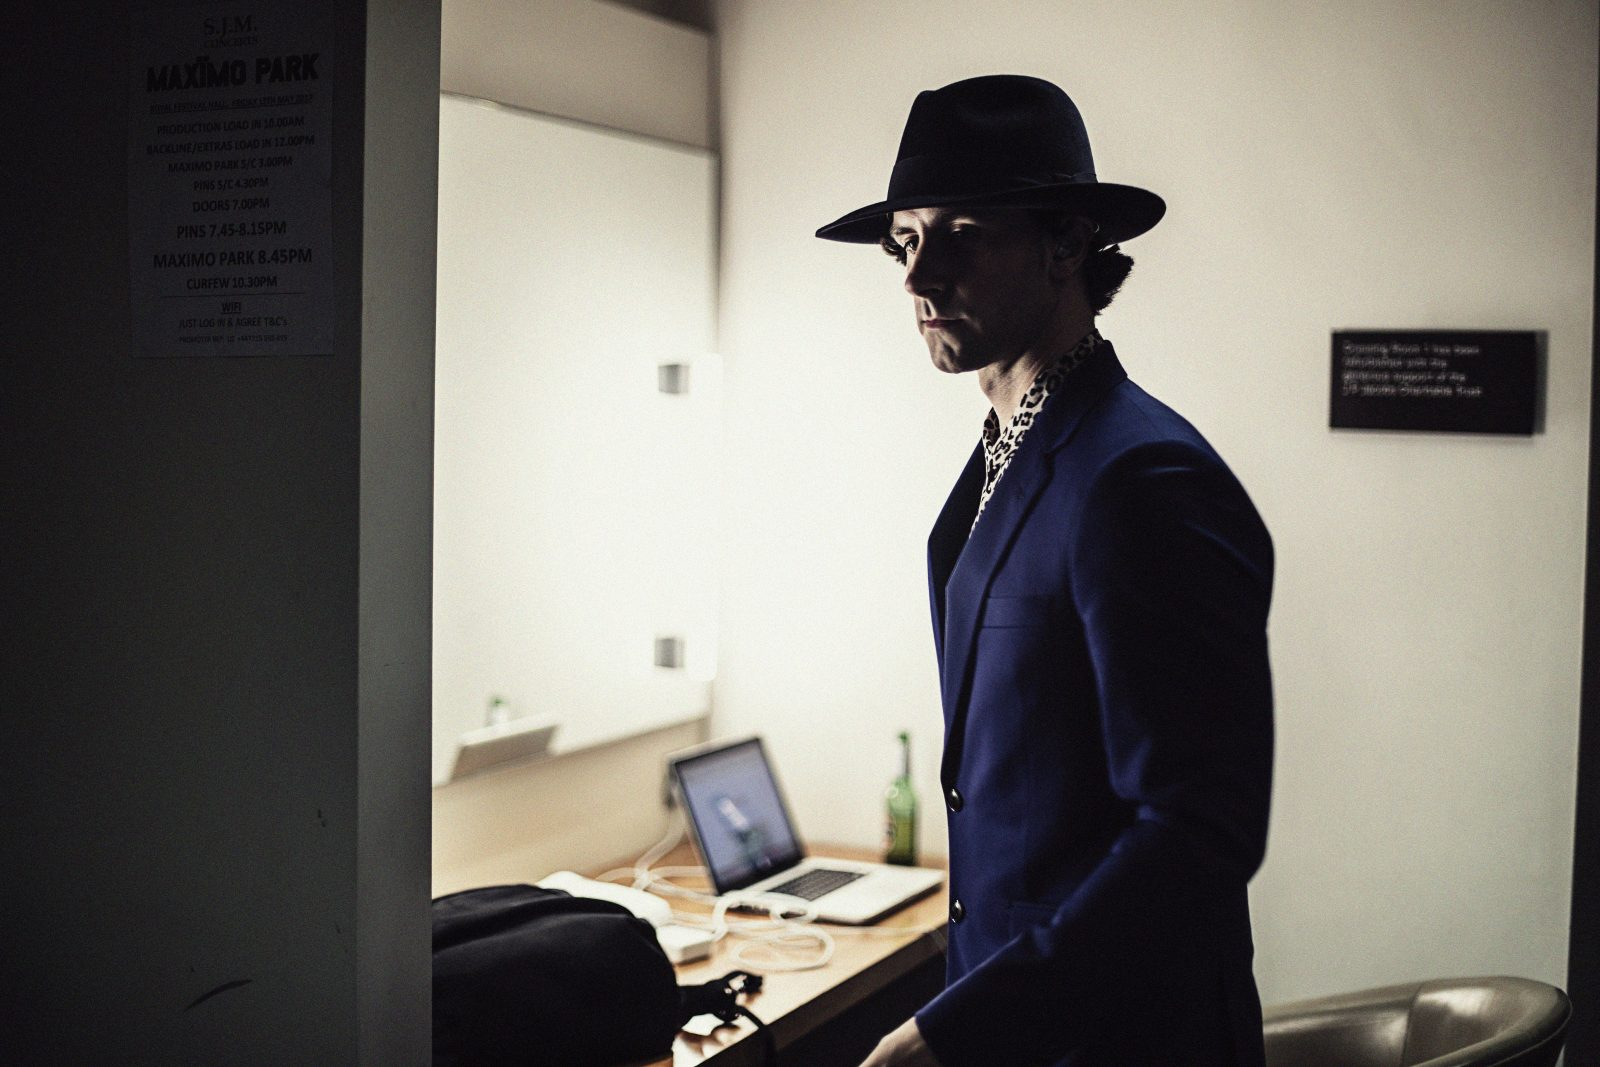 Backstage with Maximo Park